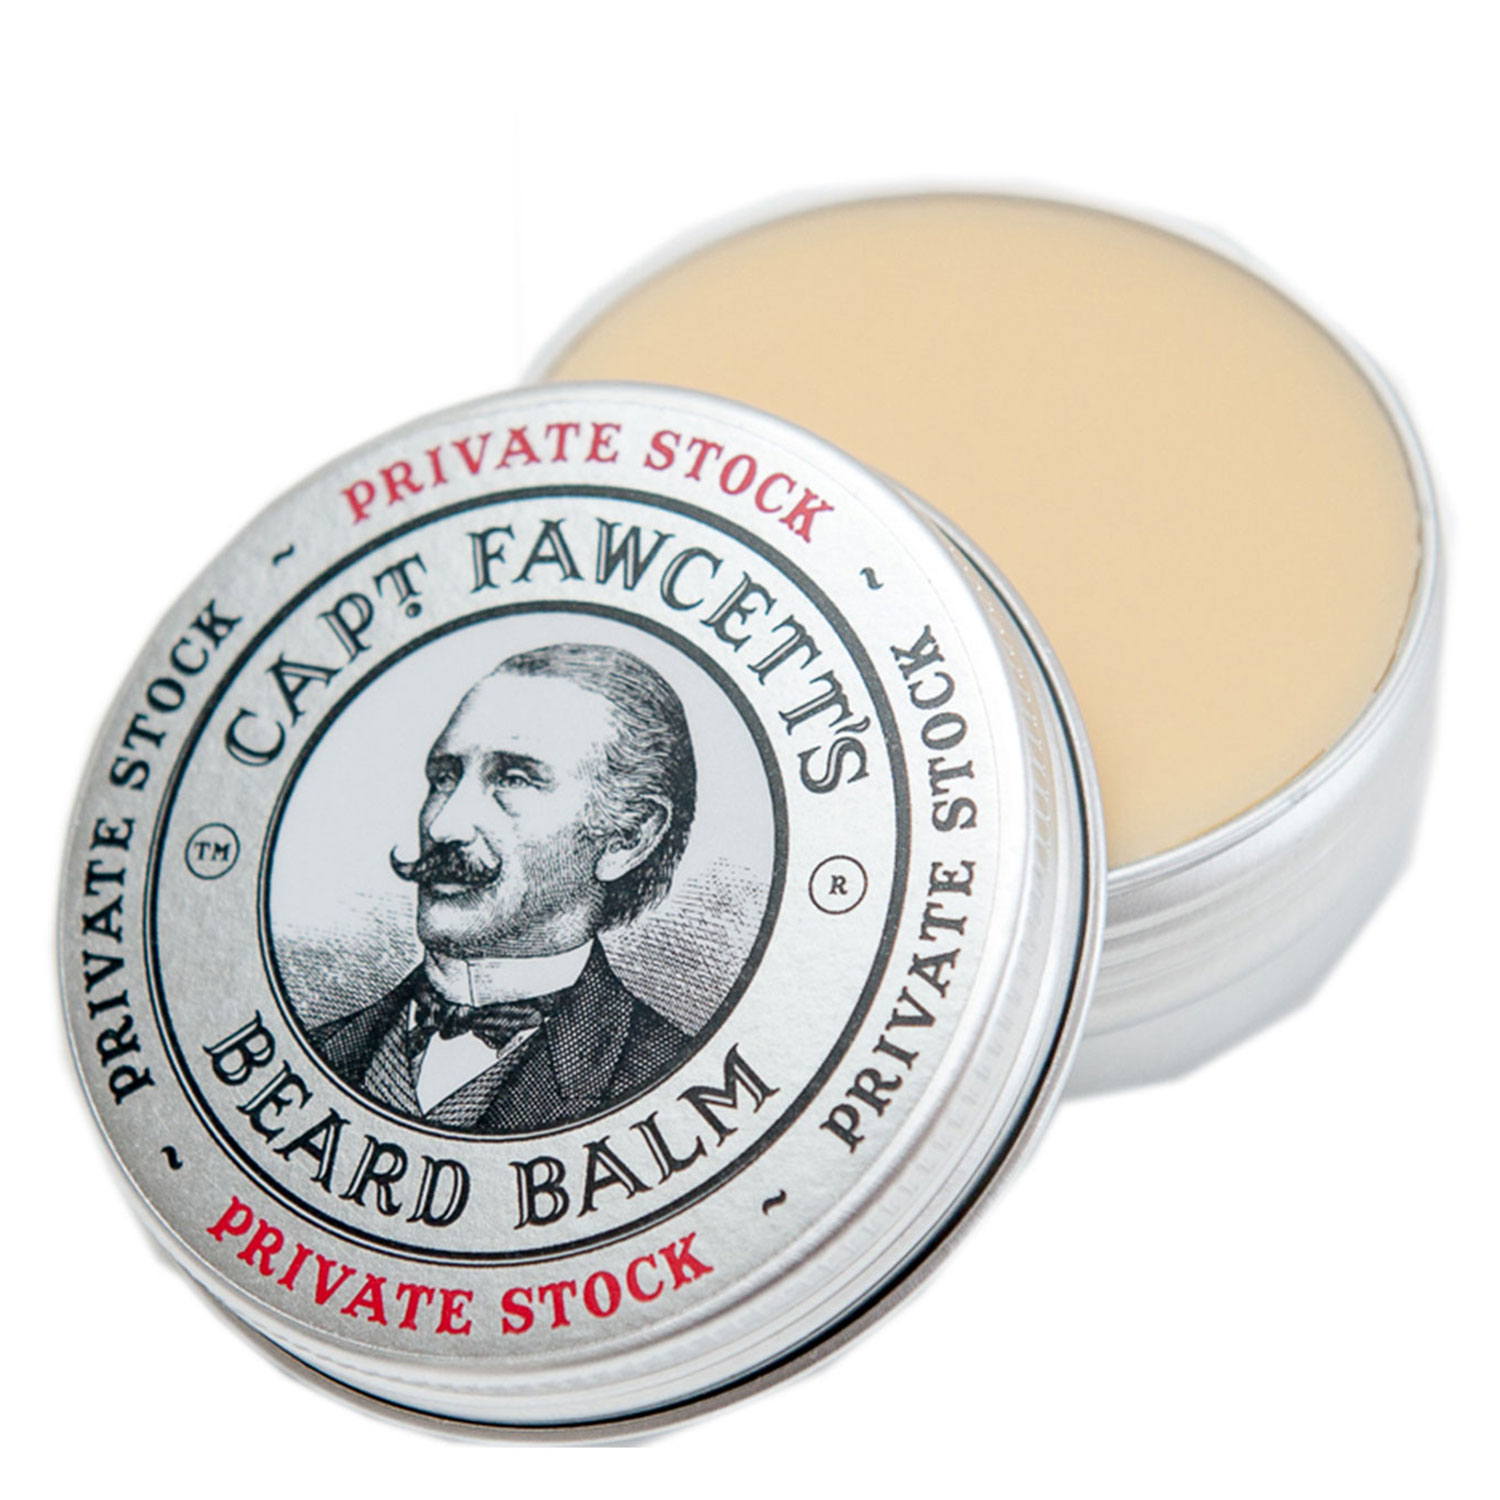 Capt. Fawcett Care - Private Stock Beard Balm